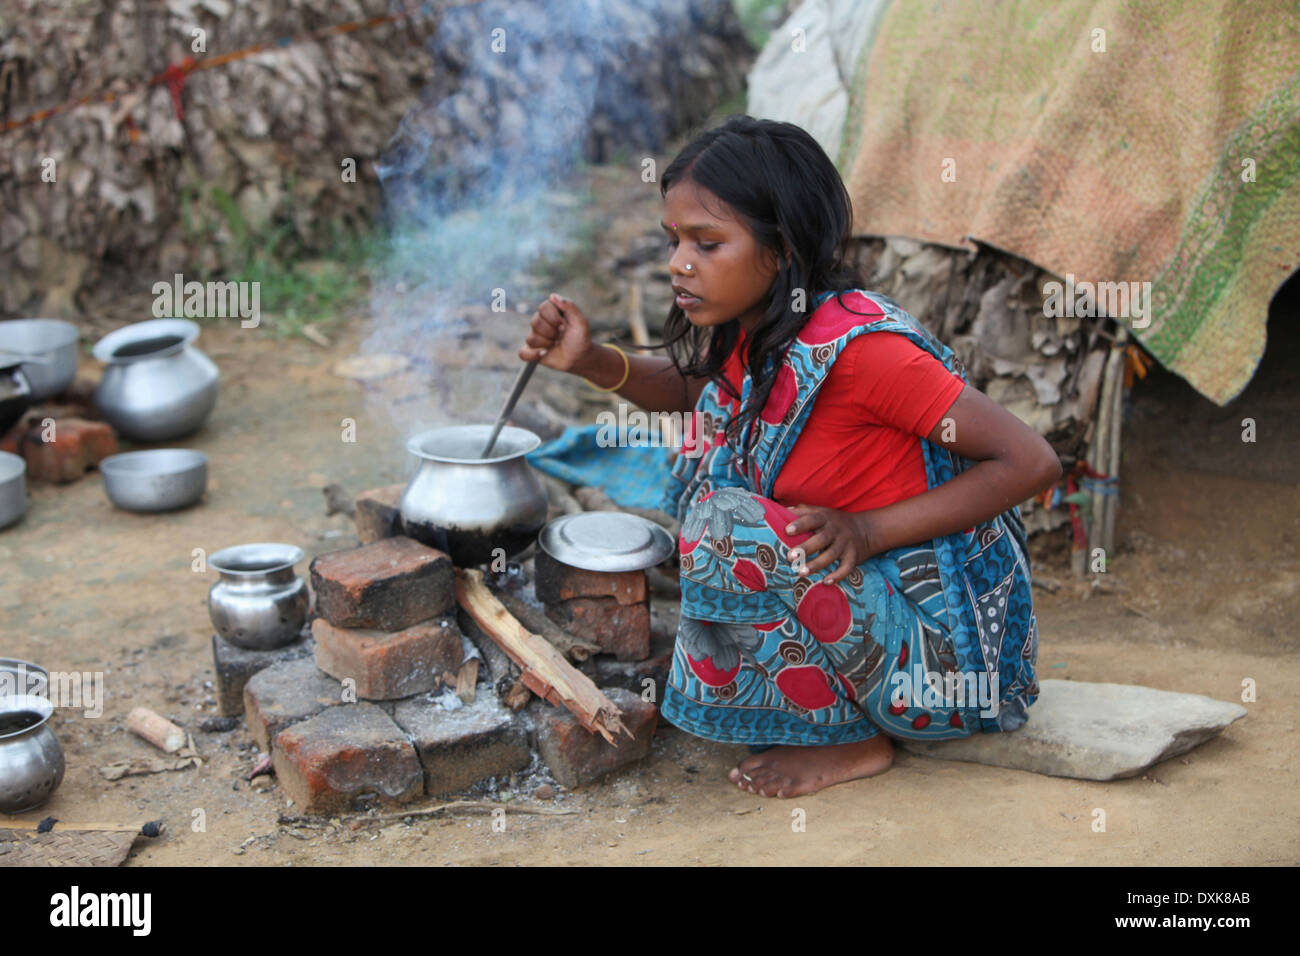 Tribal woman cooking food on hearth. Musahar or Bhuija tribe. Keredari village and block, District Hazaribaug, Jharkhand, India. - Stock Image